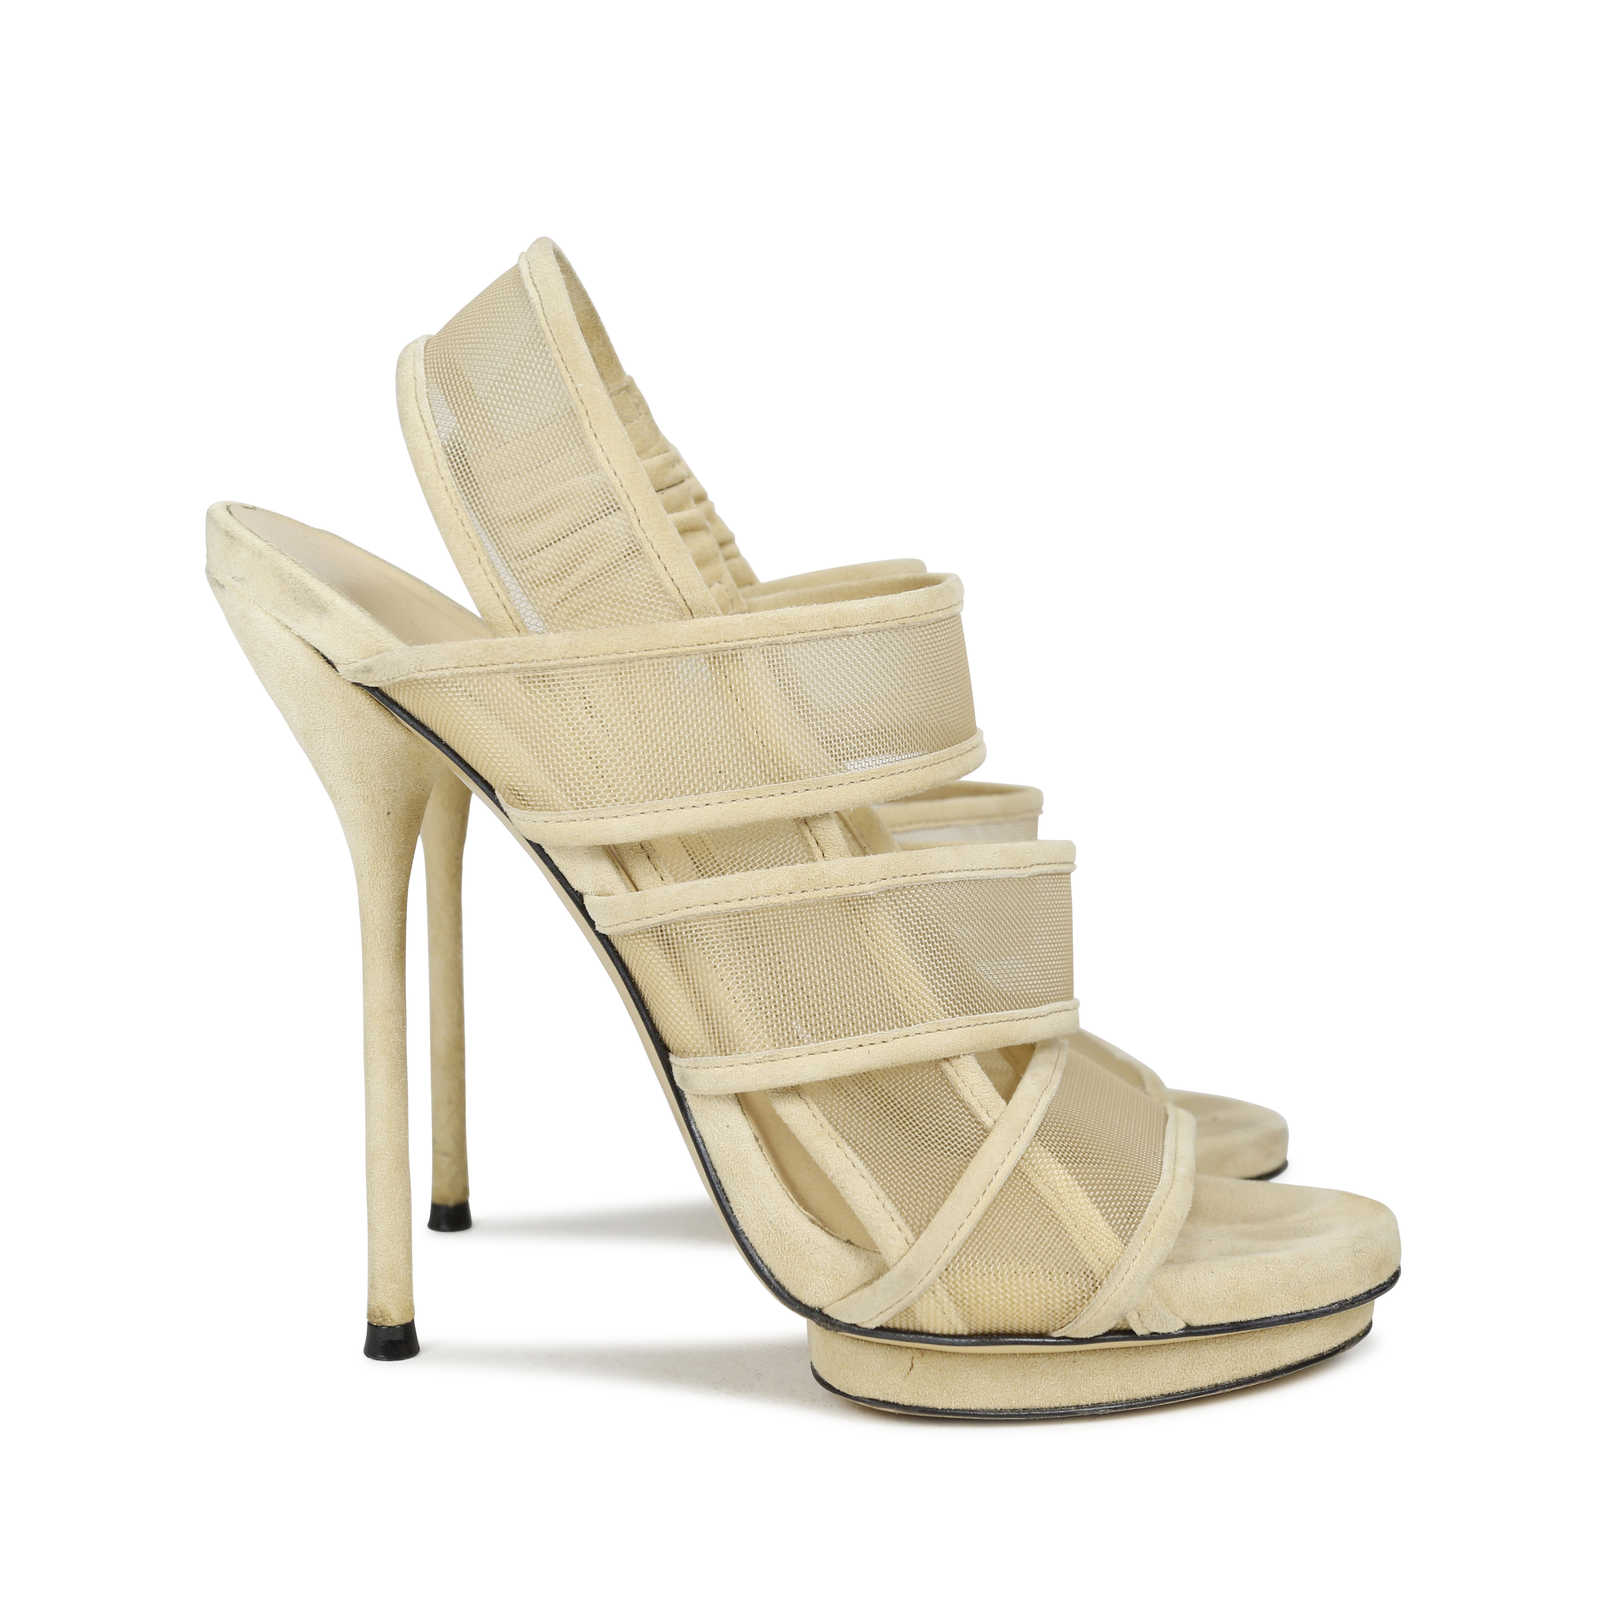 8bbe6f9b113b ... Authentic Second Hand Gucci Suede and Mesh Bette Sandals (PSS-143-00053)